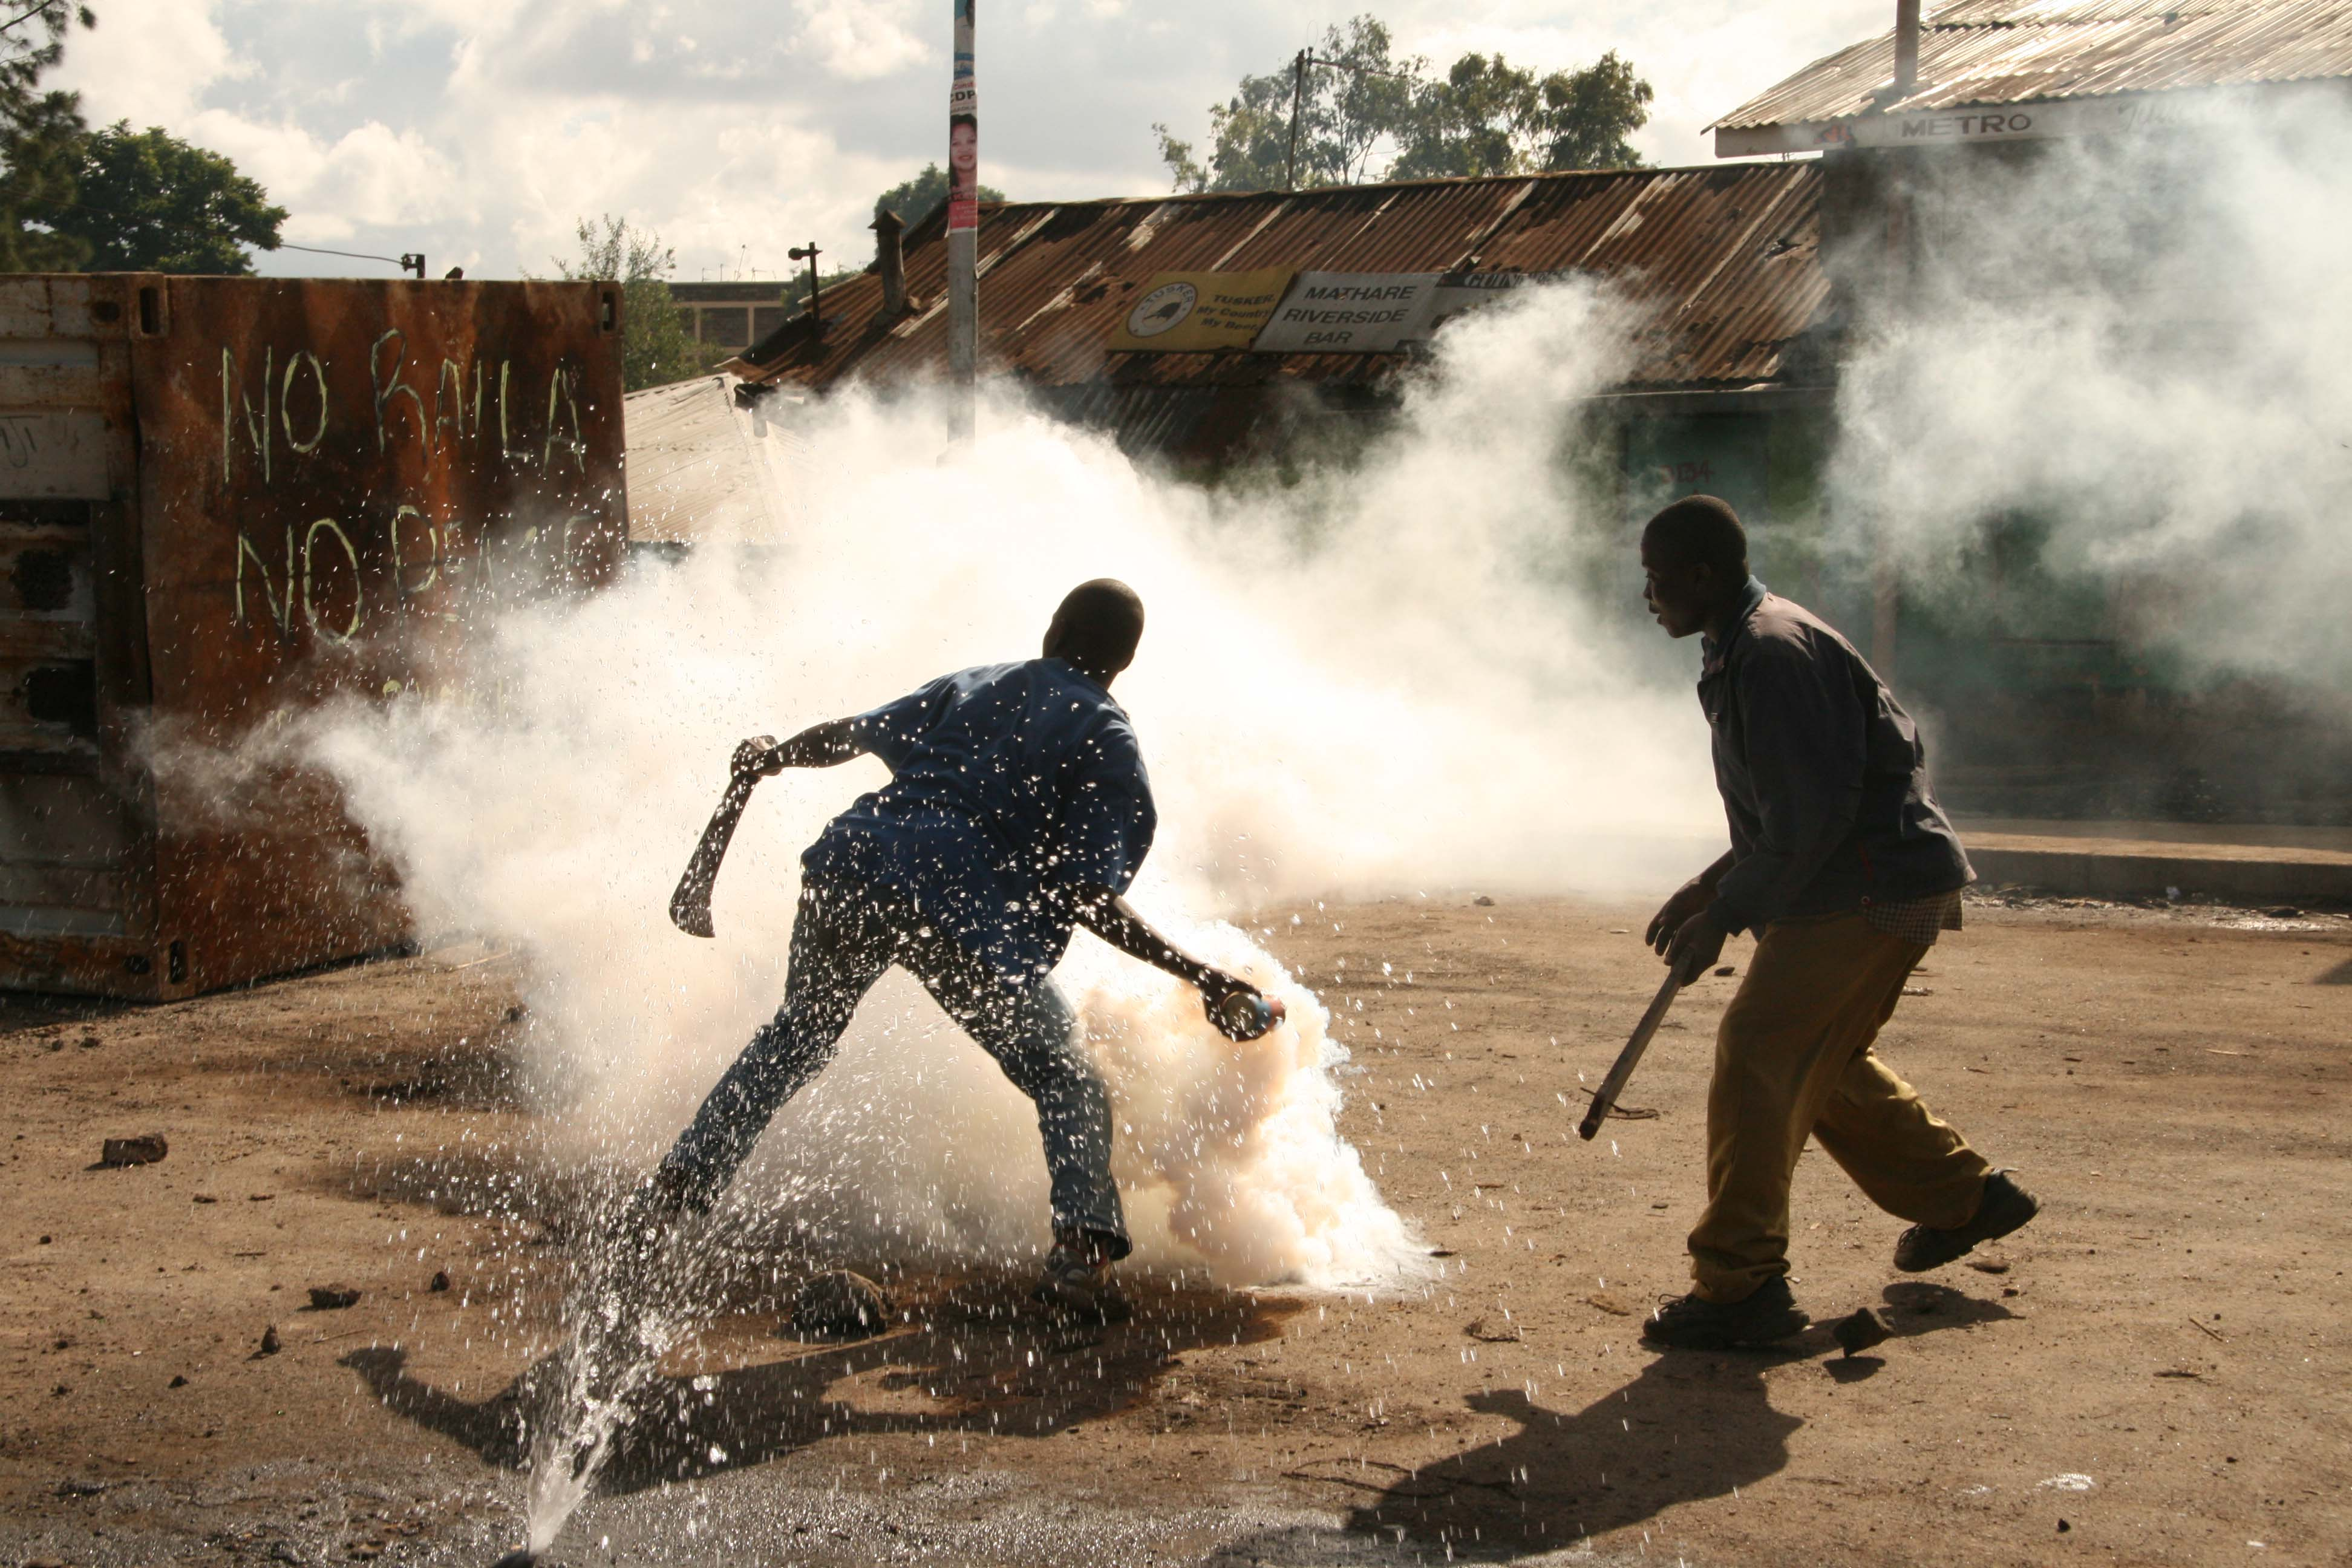 Demonstrators throw back tear gas to the police, Mathare slums, Nairobi, Kenya. 16 January 2008. This was the during the first day of the countrywide mass action that had been called by opposition leaders.